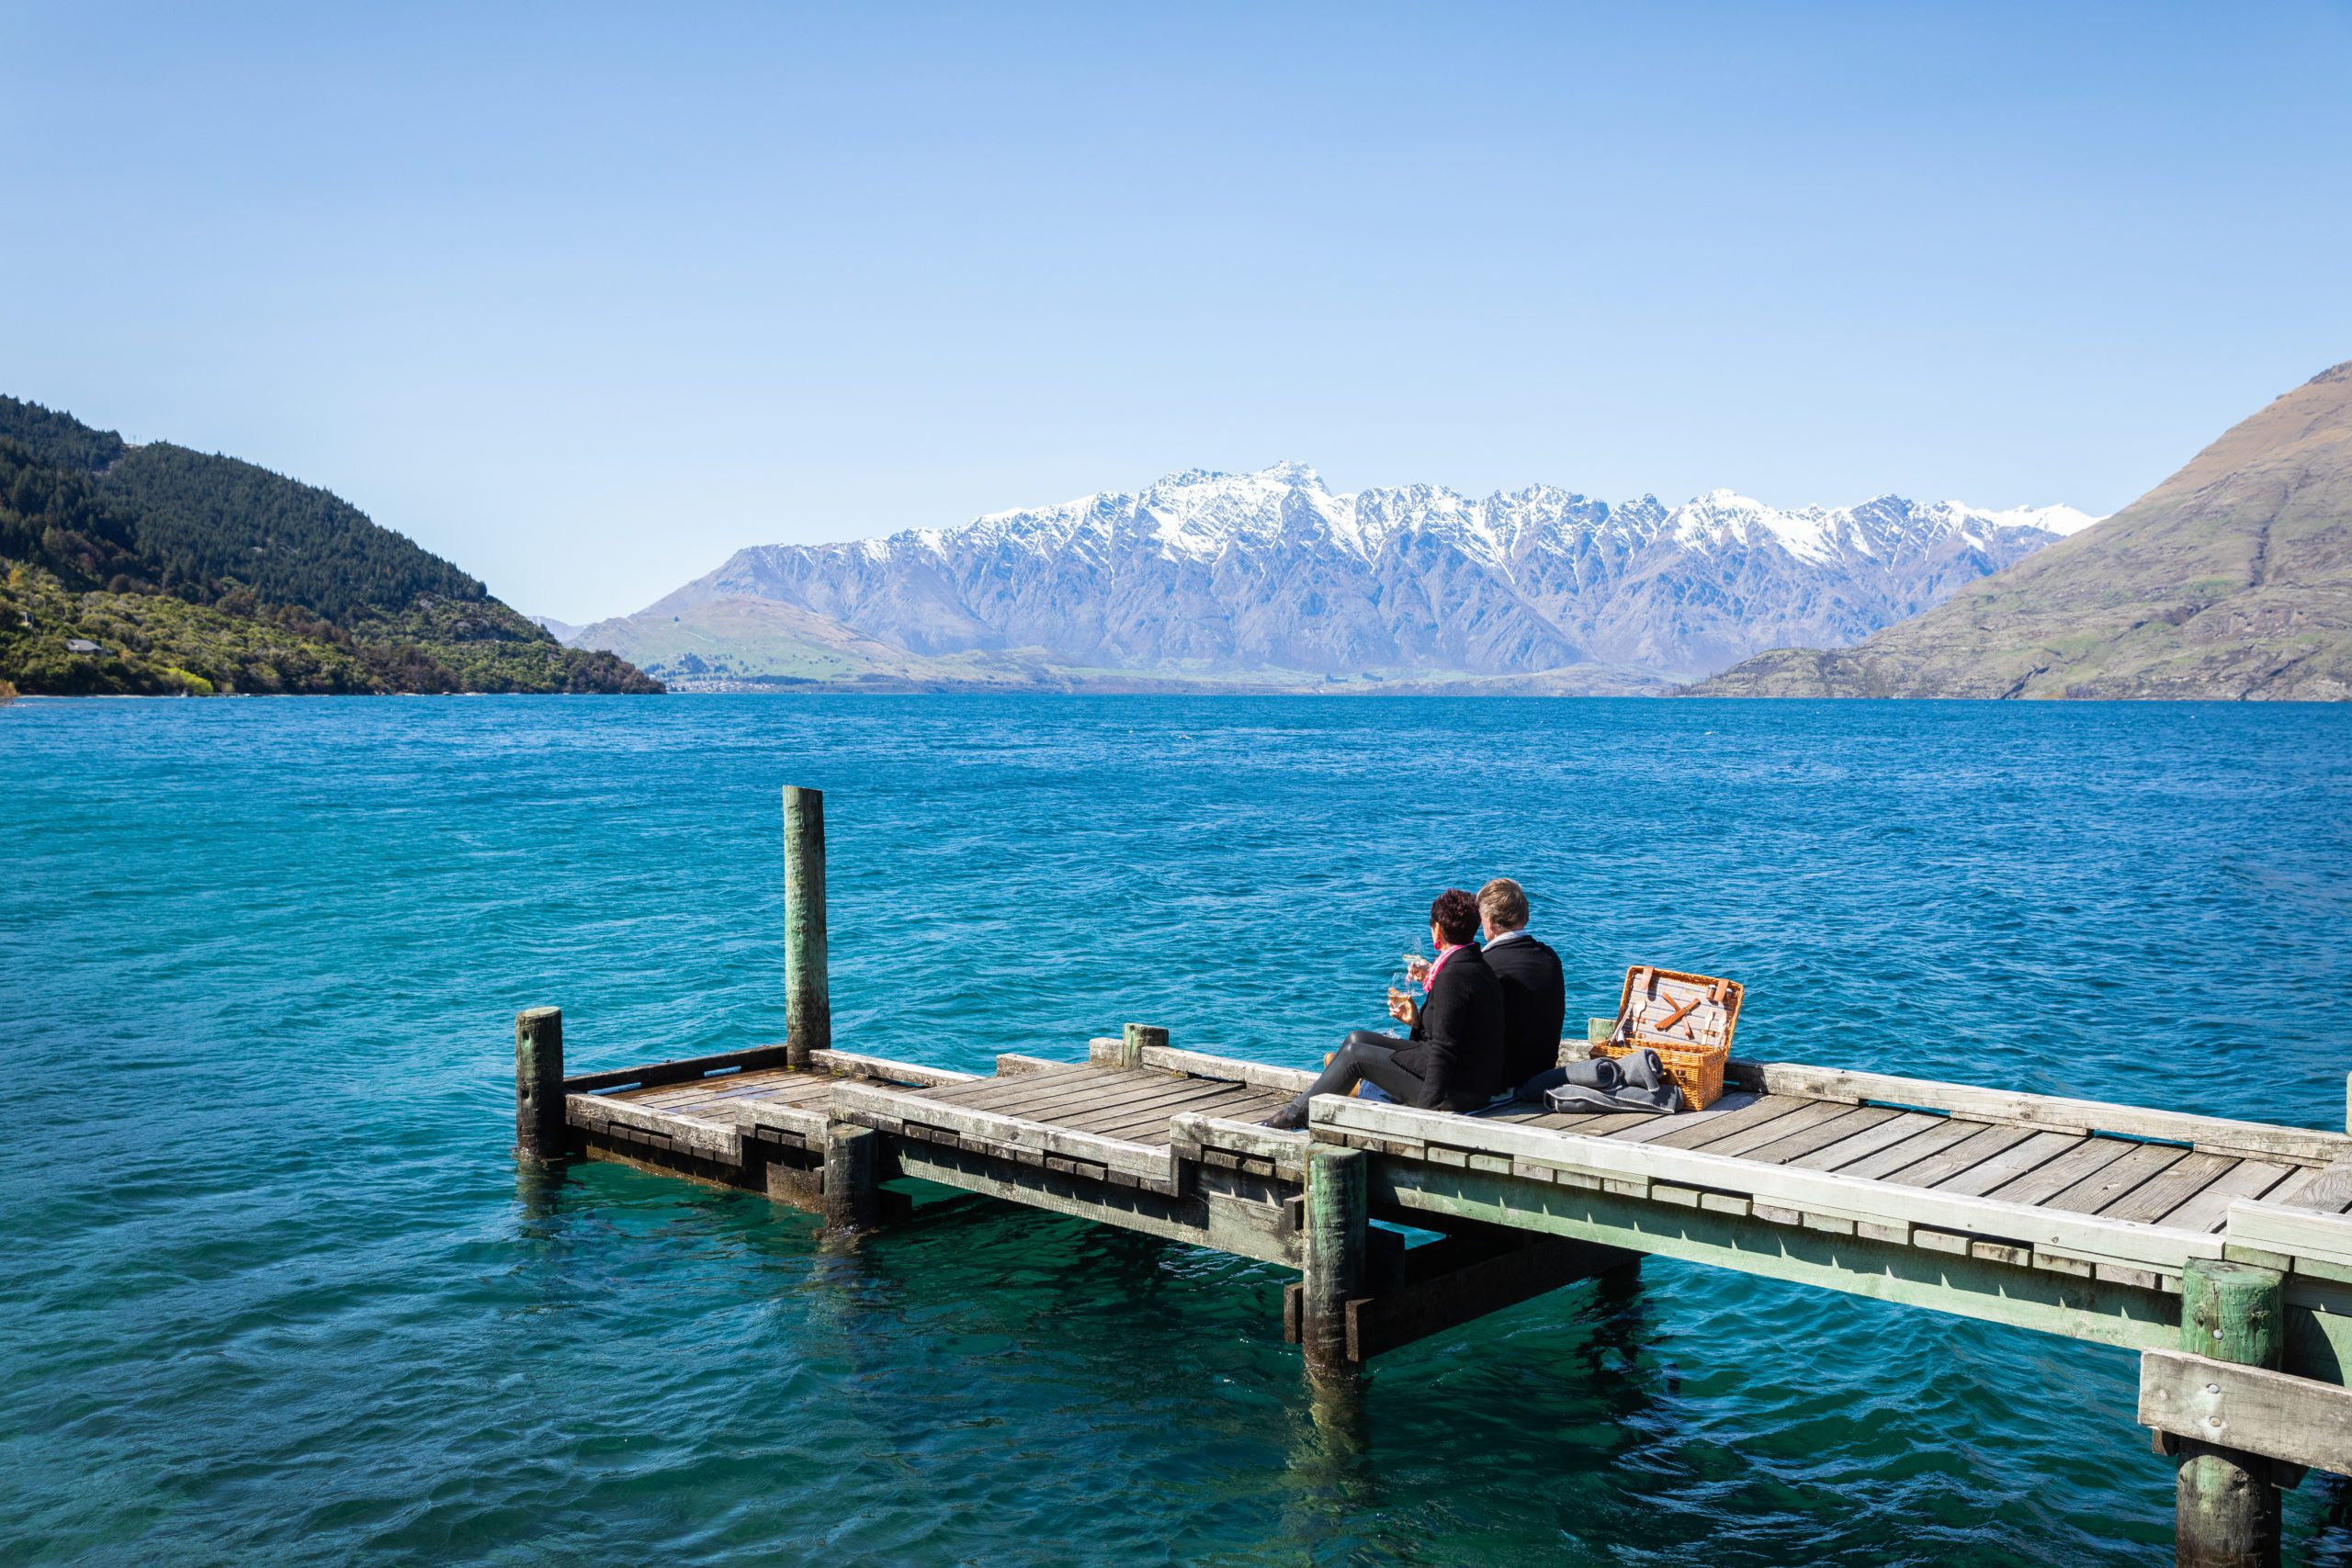 A couple enjoys a private picnic on the jetty at Matakauri Lodge, overlooking Lake Wakatipu and the Remarkables on safari in New Zealand